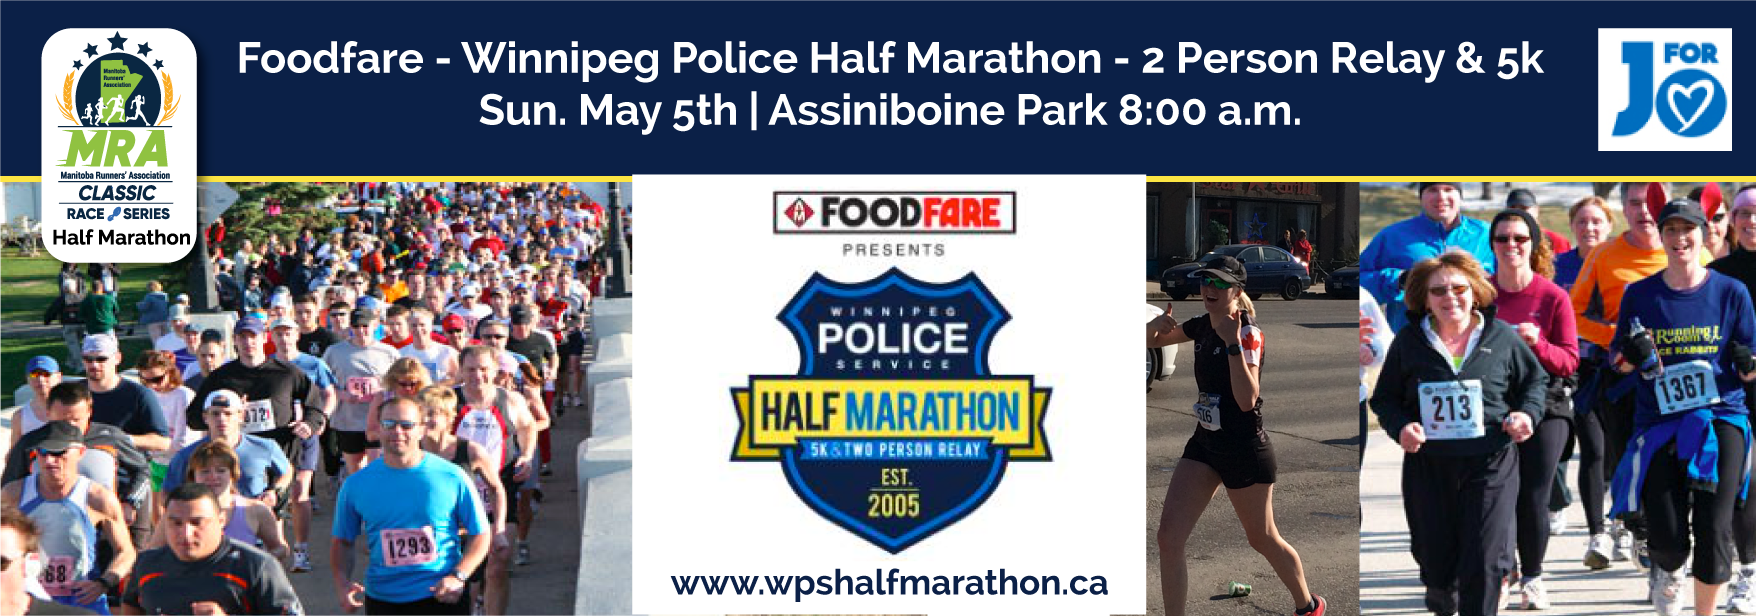 Foodfare - Winnipeg Police Half Marathon, 2 Person Relay & 5k